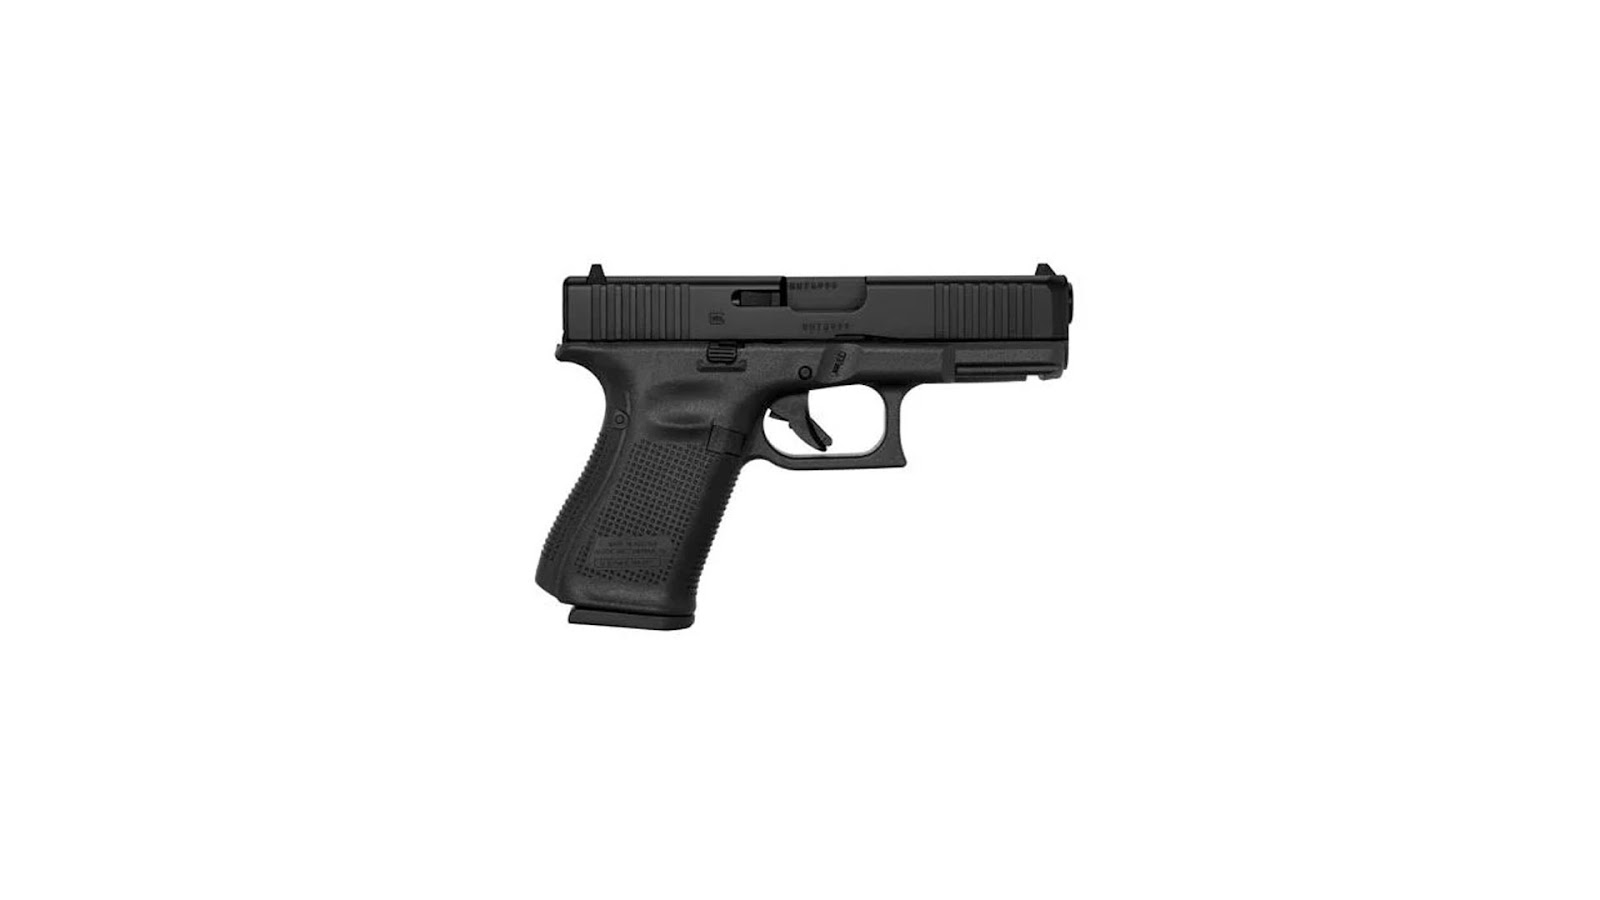 Glock 19 GEN5 9mm handgun